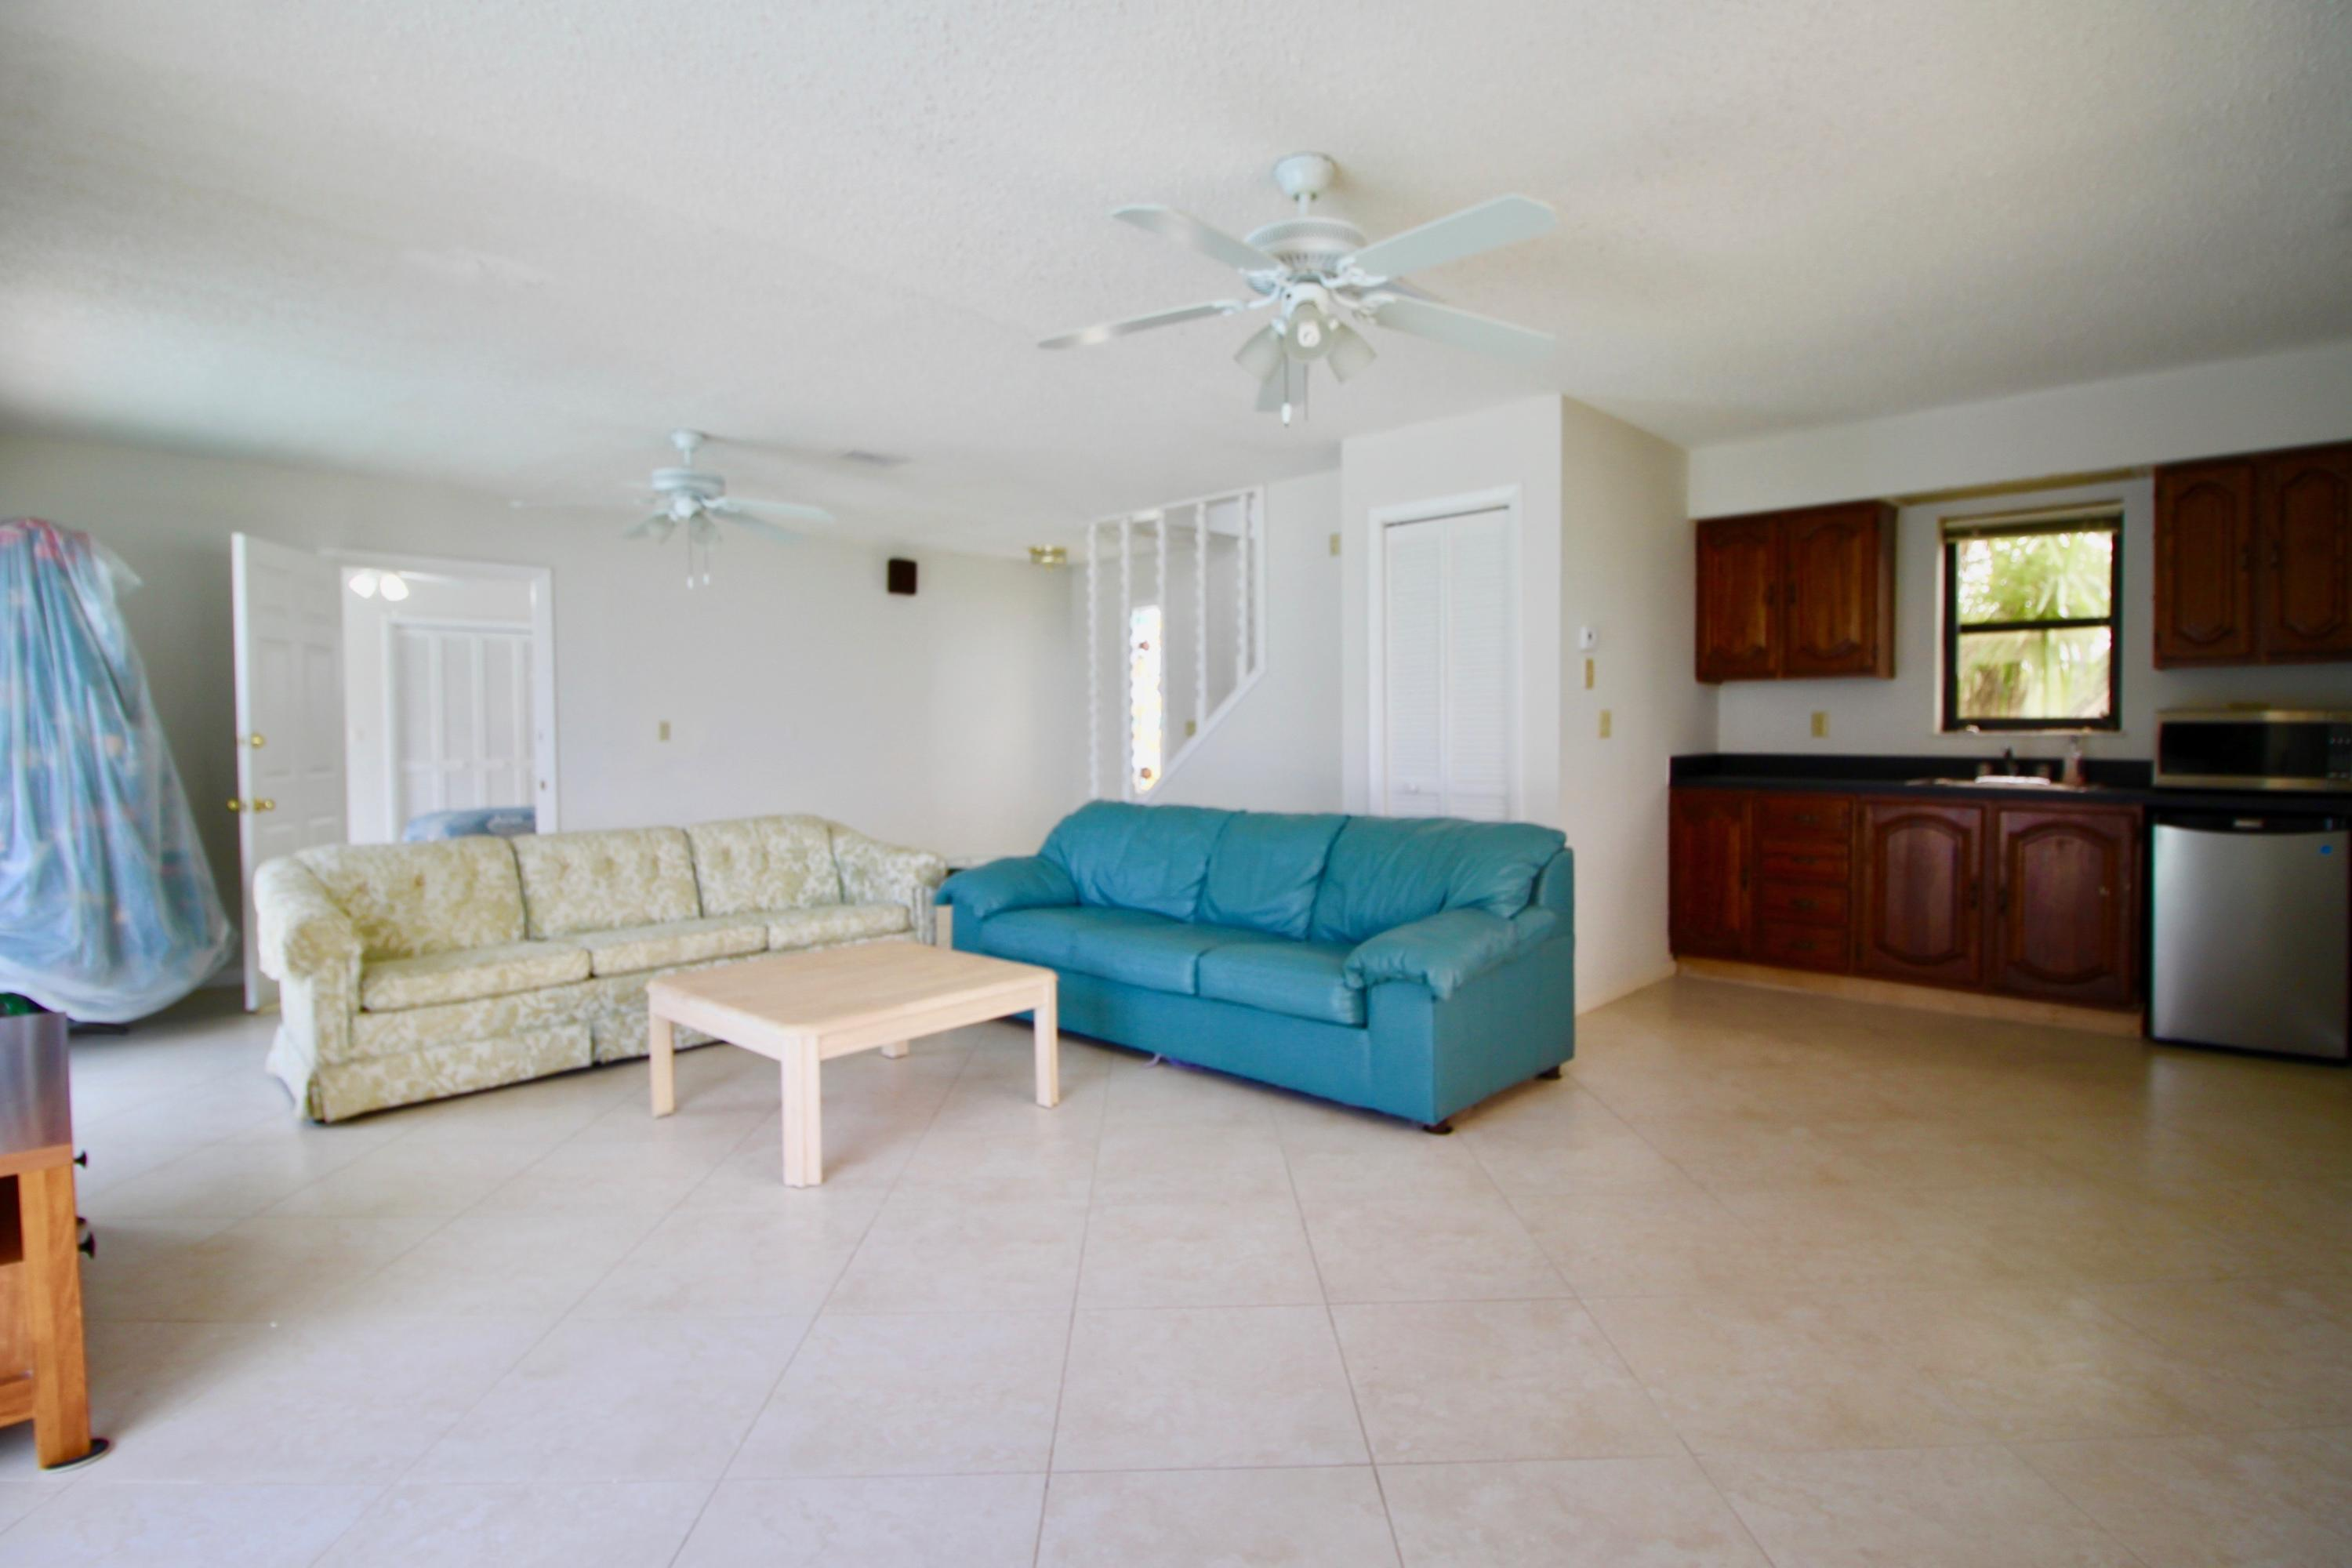 SURFSIDE-UNIT TWO- BLK 11 LOT 21 (OR 1537-983: 3816-949: 3826-709)